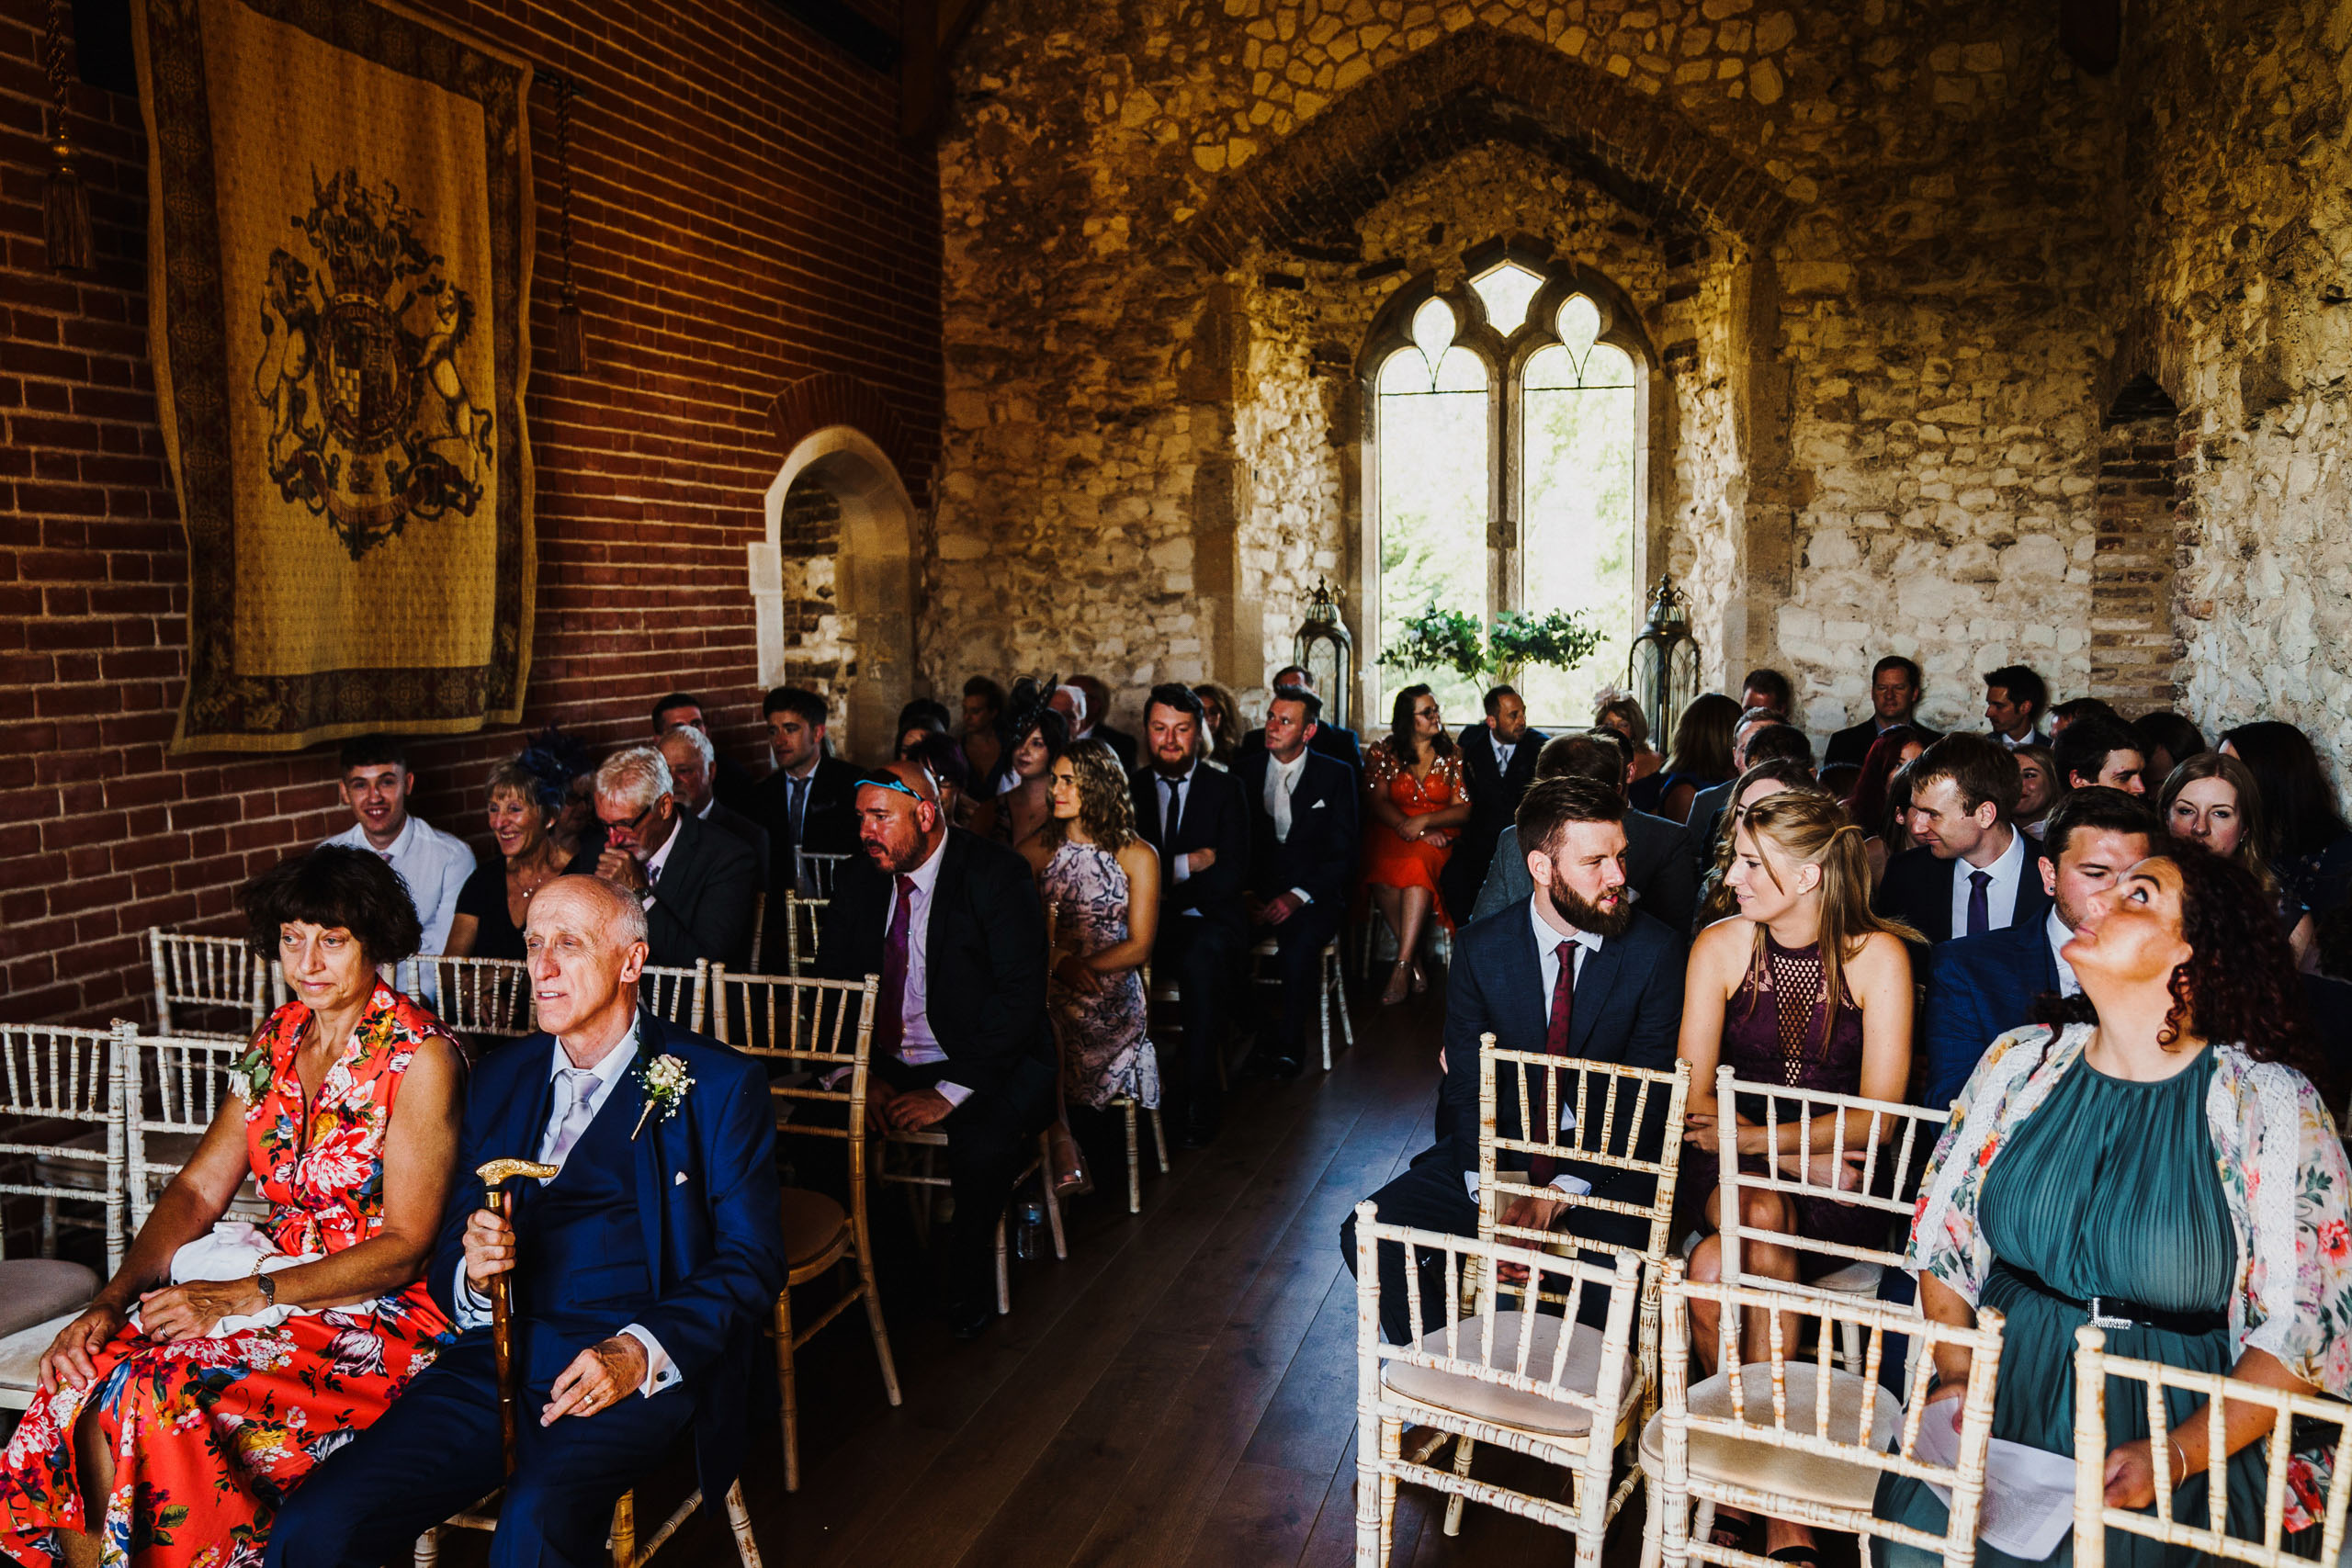 Guests wait for the bride to arrive at Pentney Abbey